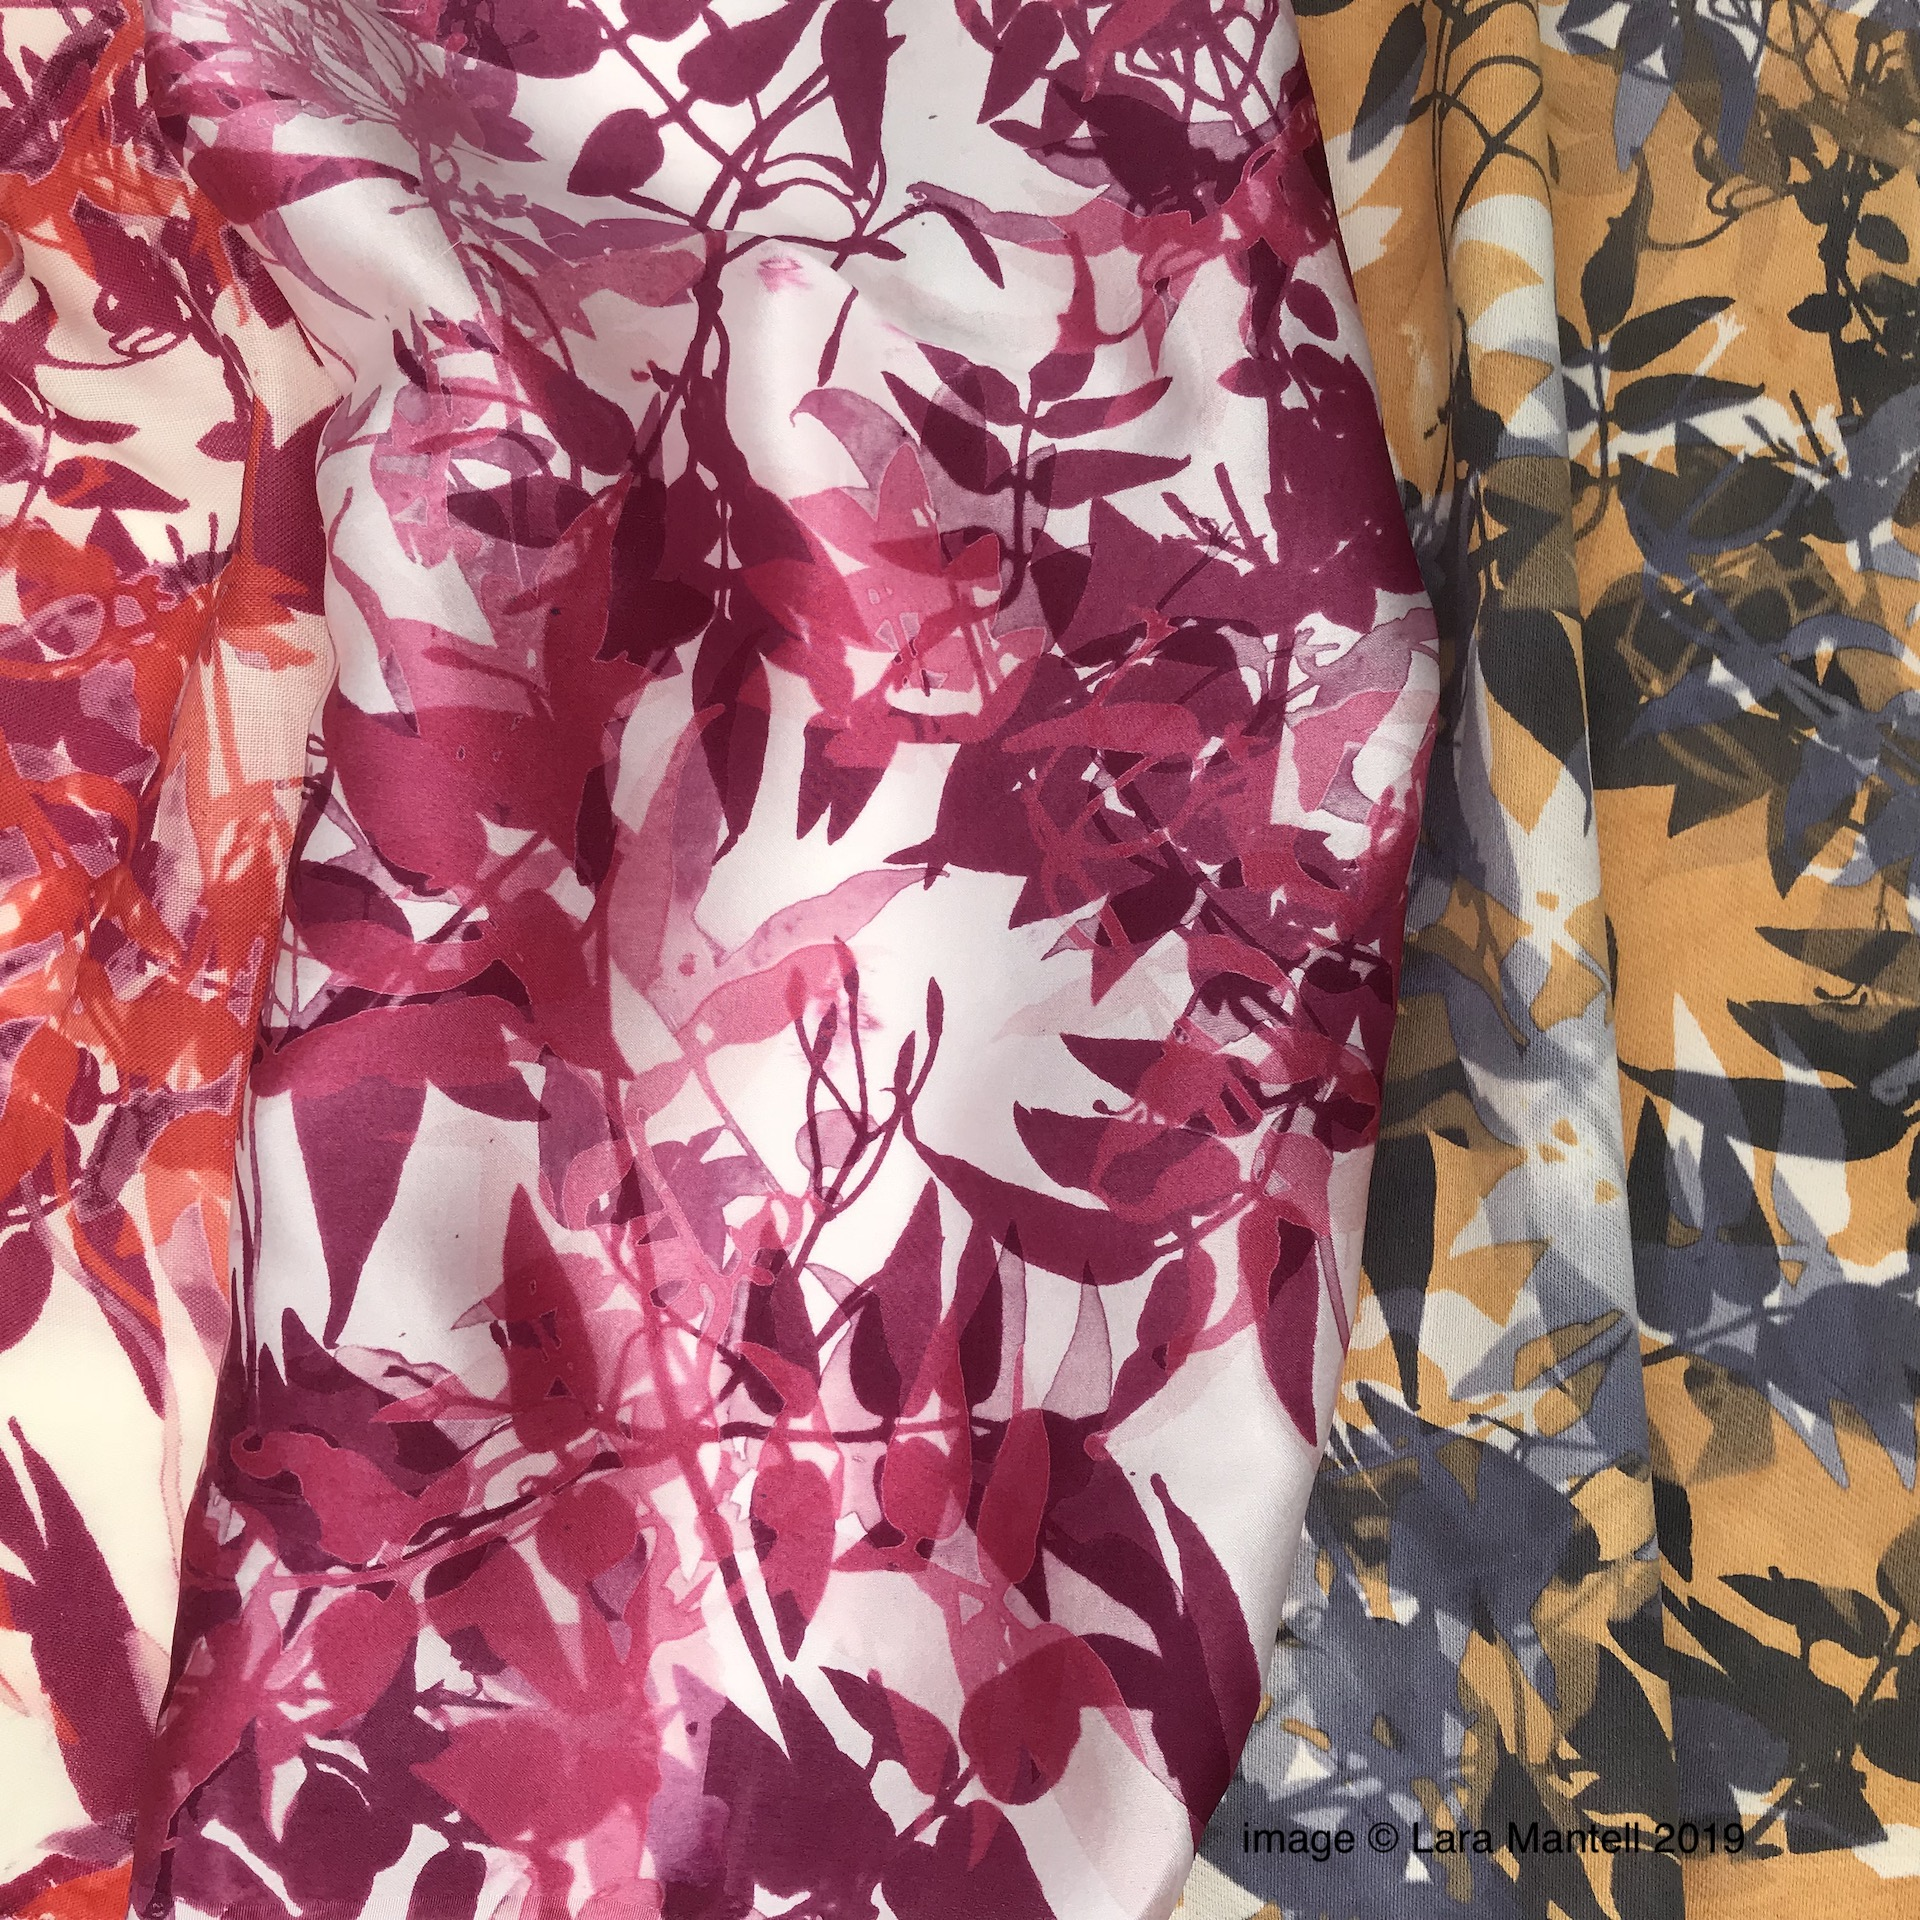 Screen printed textiles designed by Lara Mantell. Hand printed using foraged and natural dye extracts.